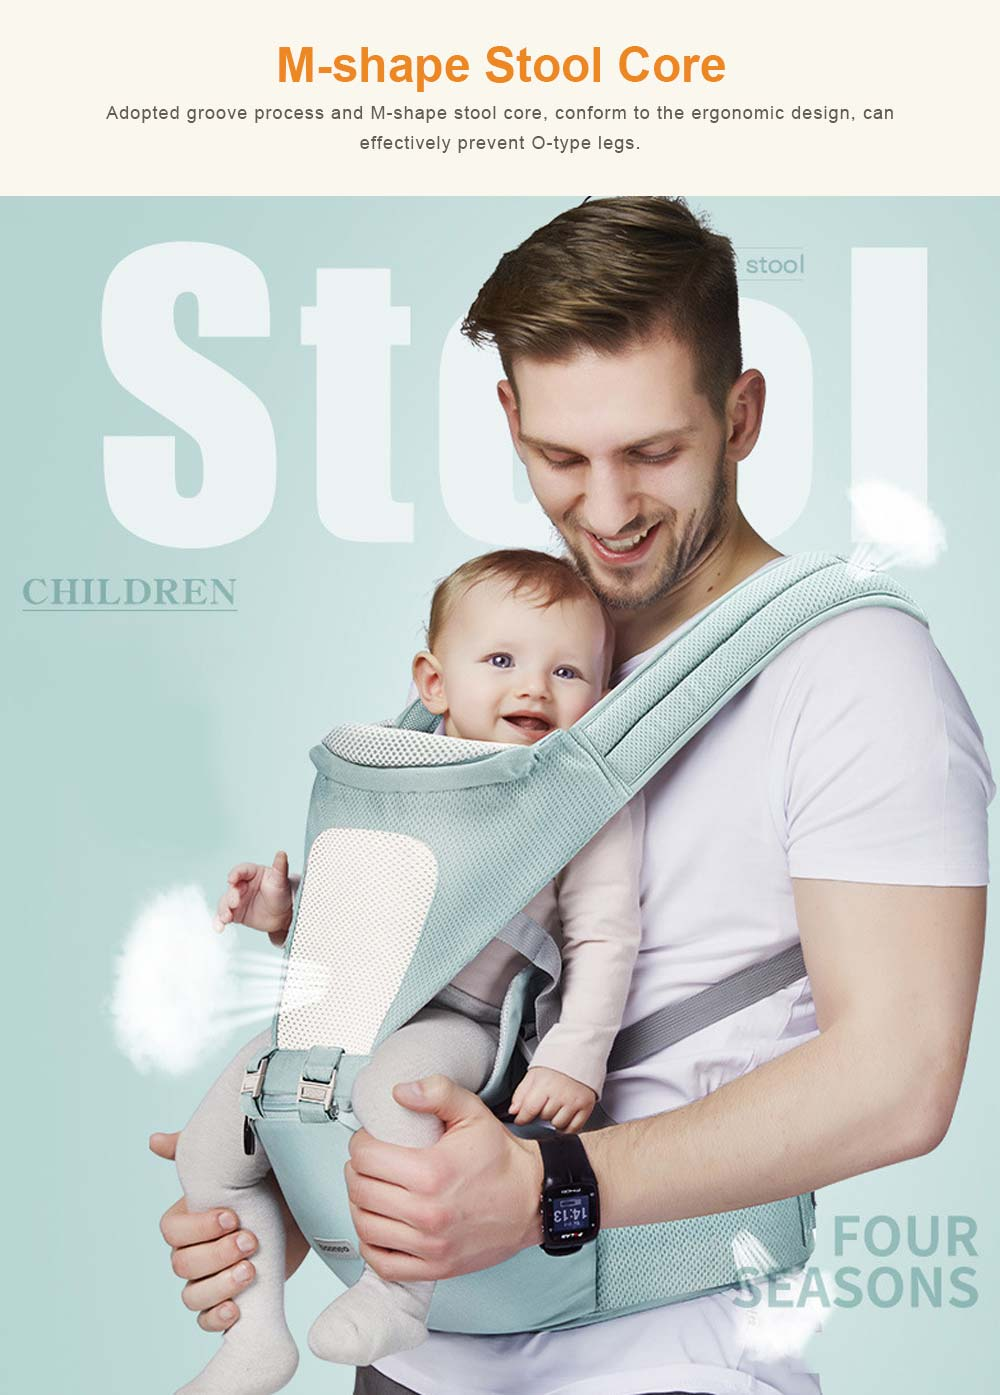 3 in 1 Toddler Waist Stool Baby Carrier, Multiple Functions Infant Breathable Child Stool Hold Infant and Toddler Product Suitable for All Seasons 2